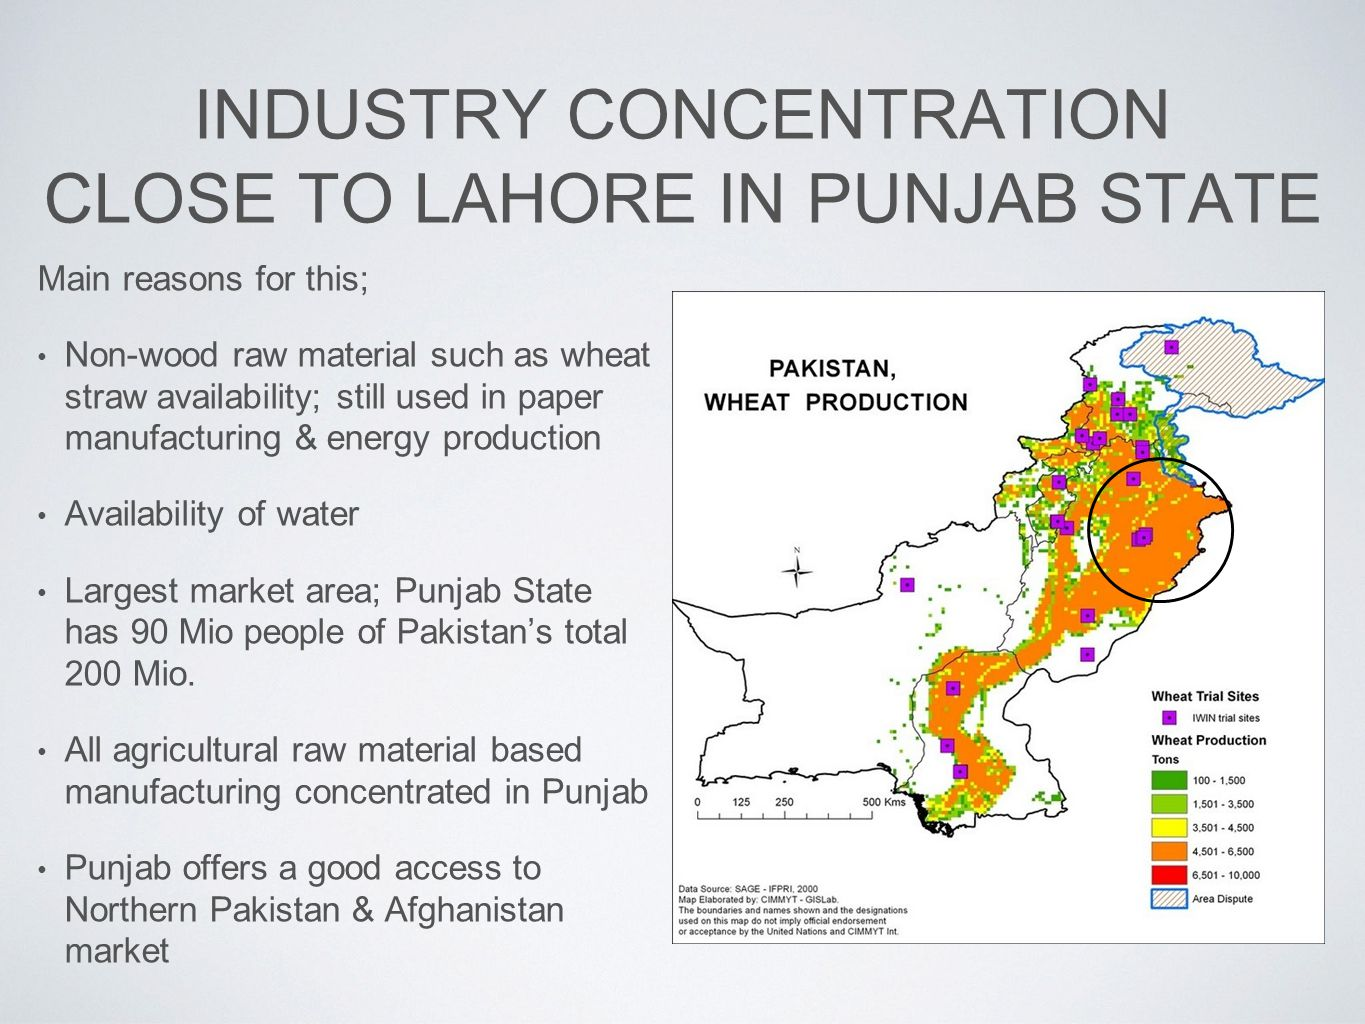 INDUSTRY CONCENTRATION CLOSE TO LAHORE IN PUNJAB STATE Main reasons for this; Non-wood raw material such as wheat straw availability; still used in paper manufacturing & energy production Availability of water Largest market area; Punjab State has 90 Mio people of Pakistan's total 200 Mio.